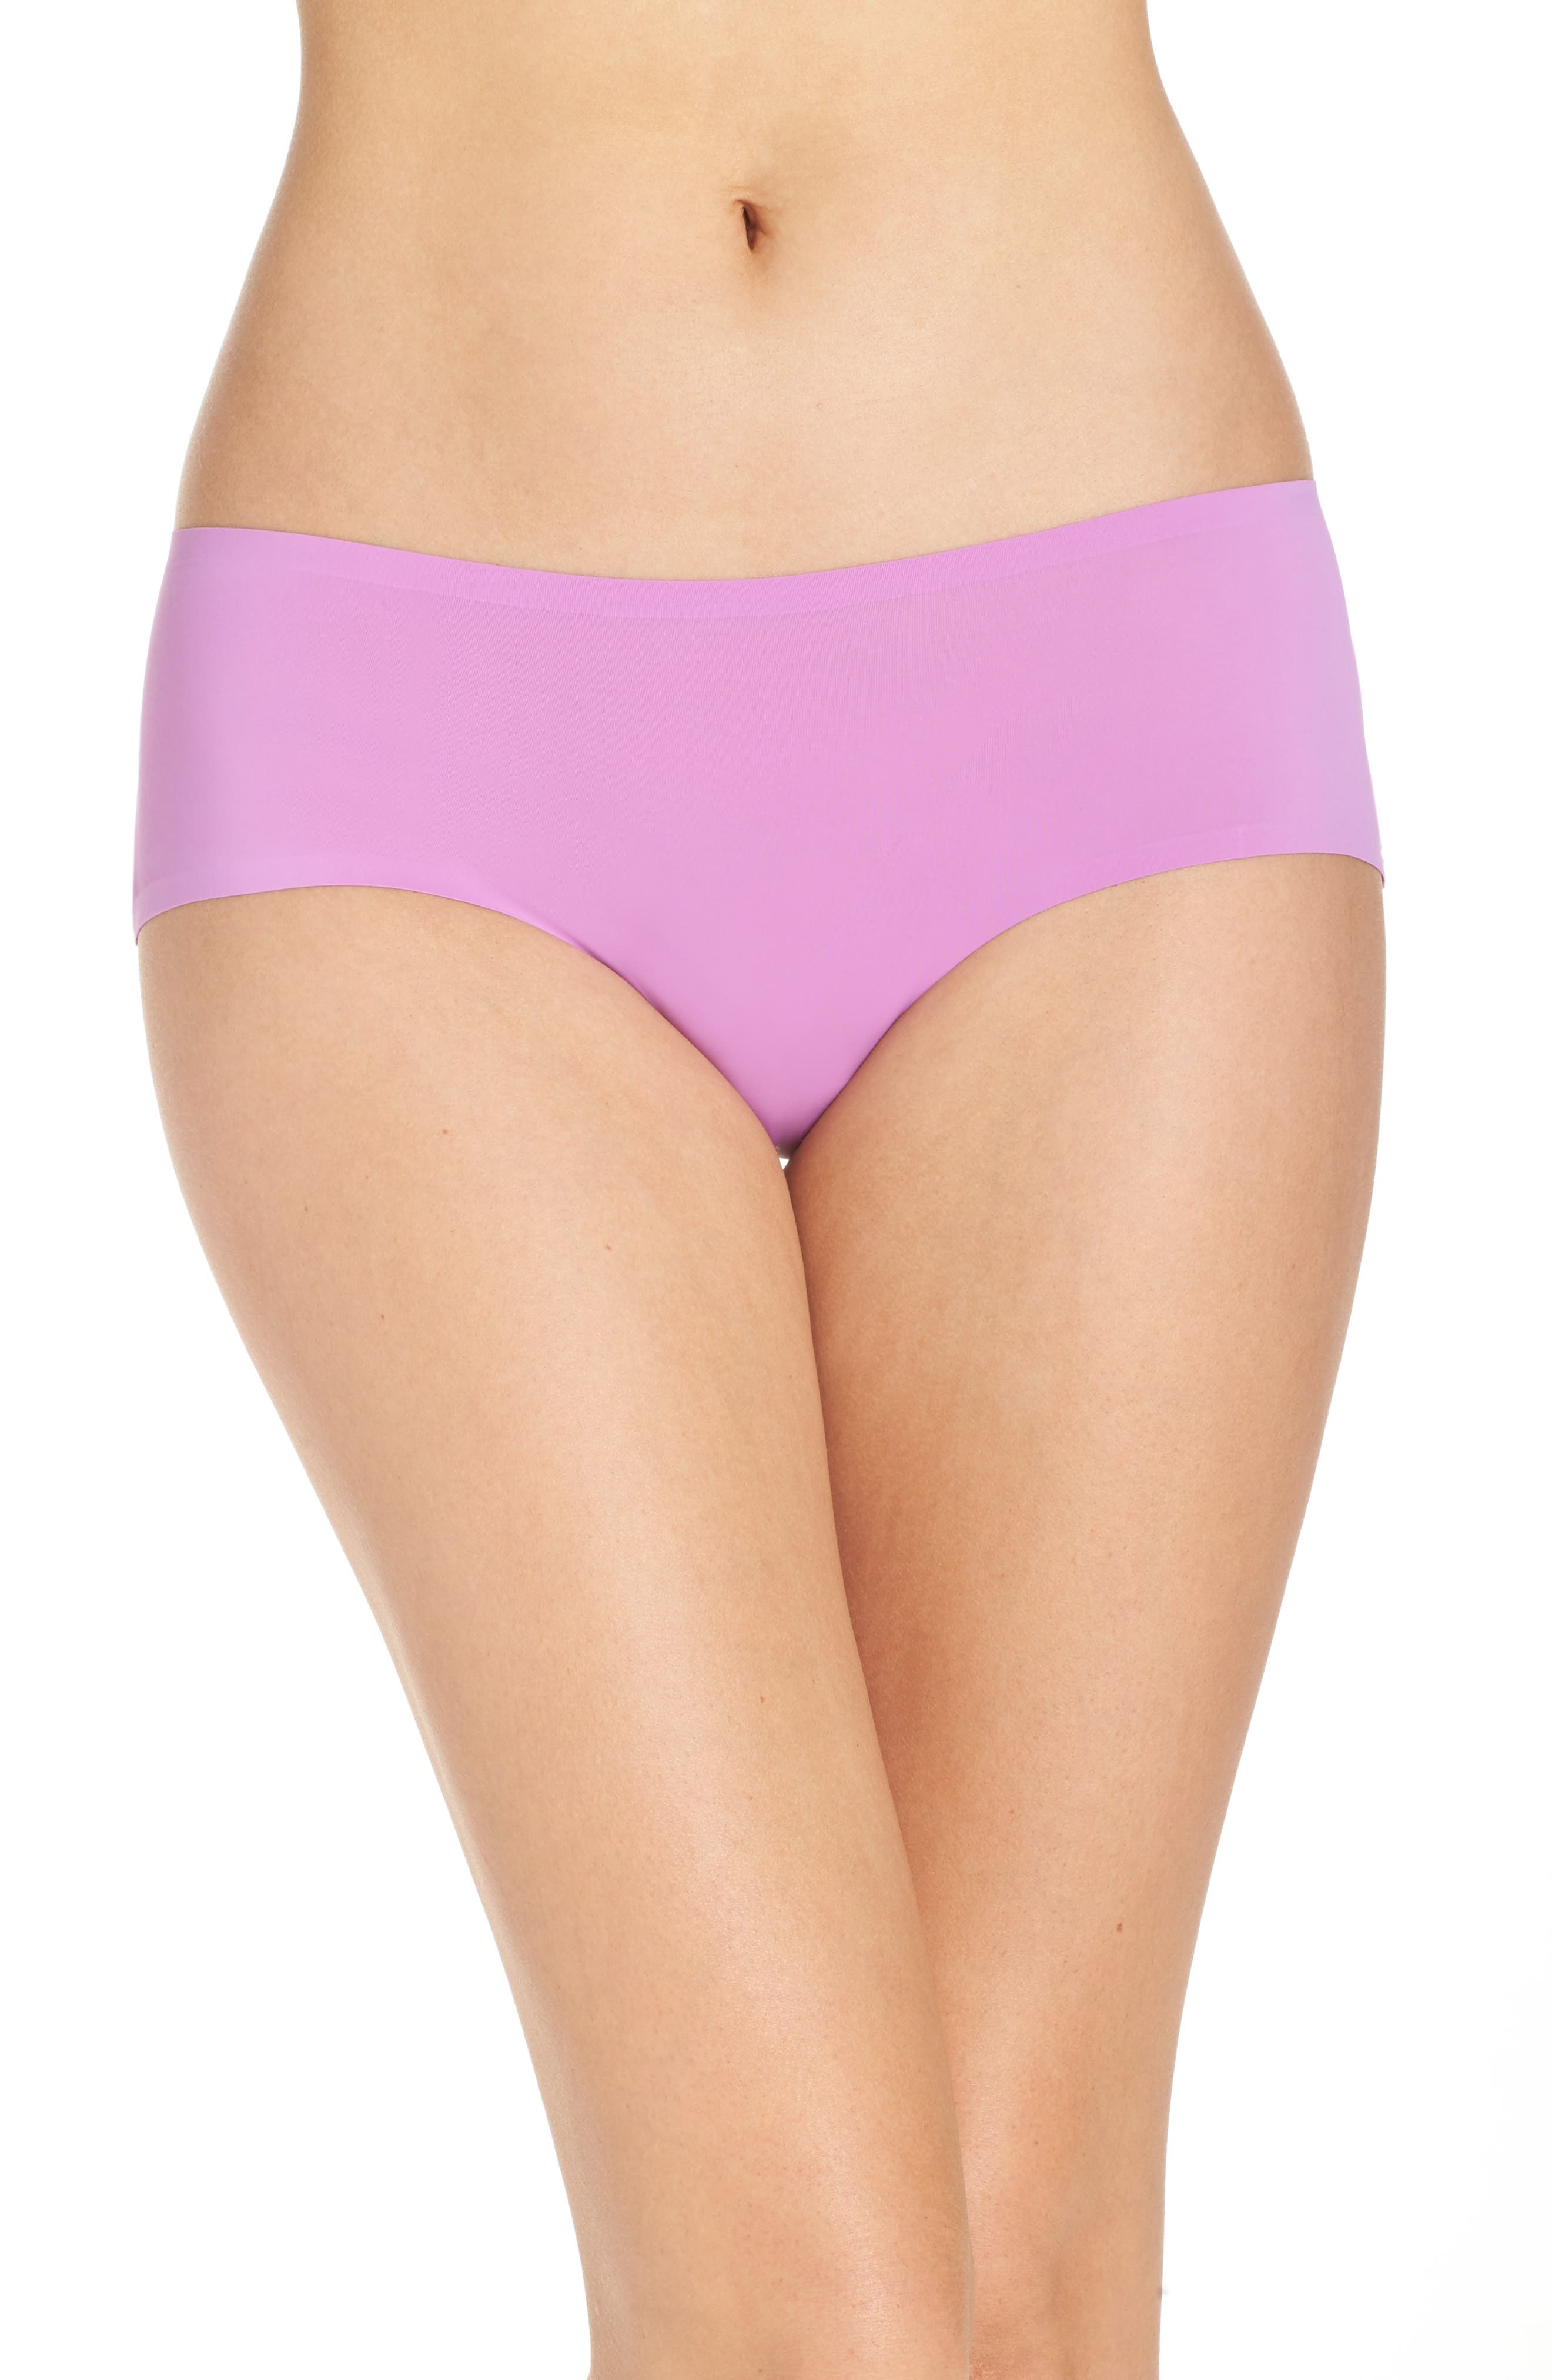 Alternate Image 1 Selected - Free People Intimately FP Smooth Hipster Panties (3 for $33)